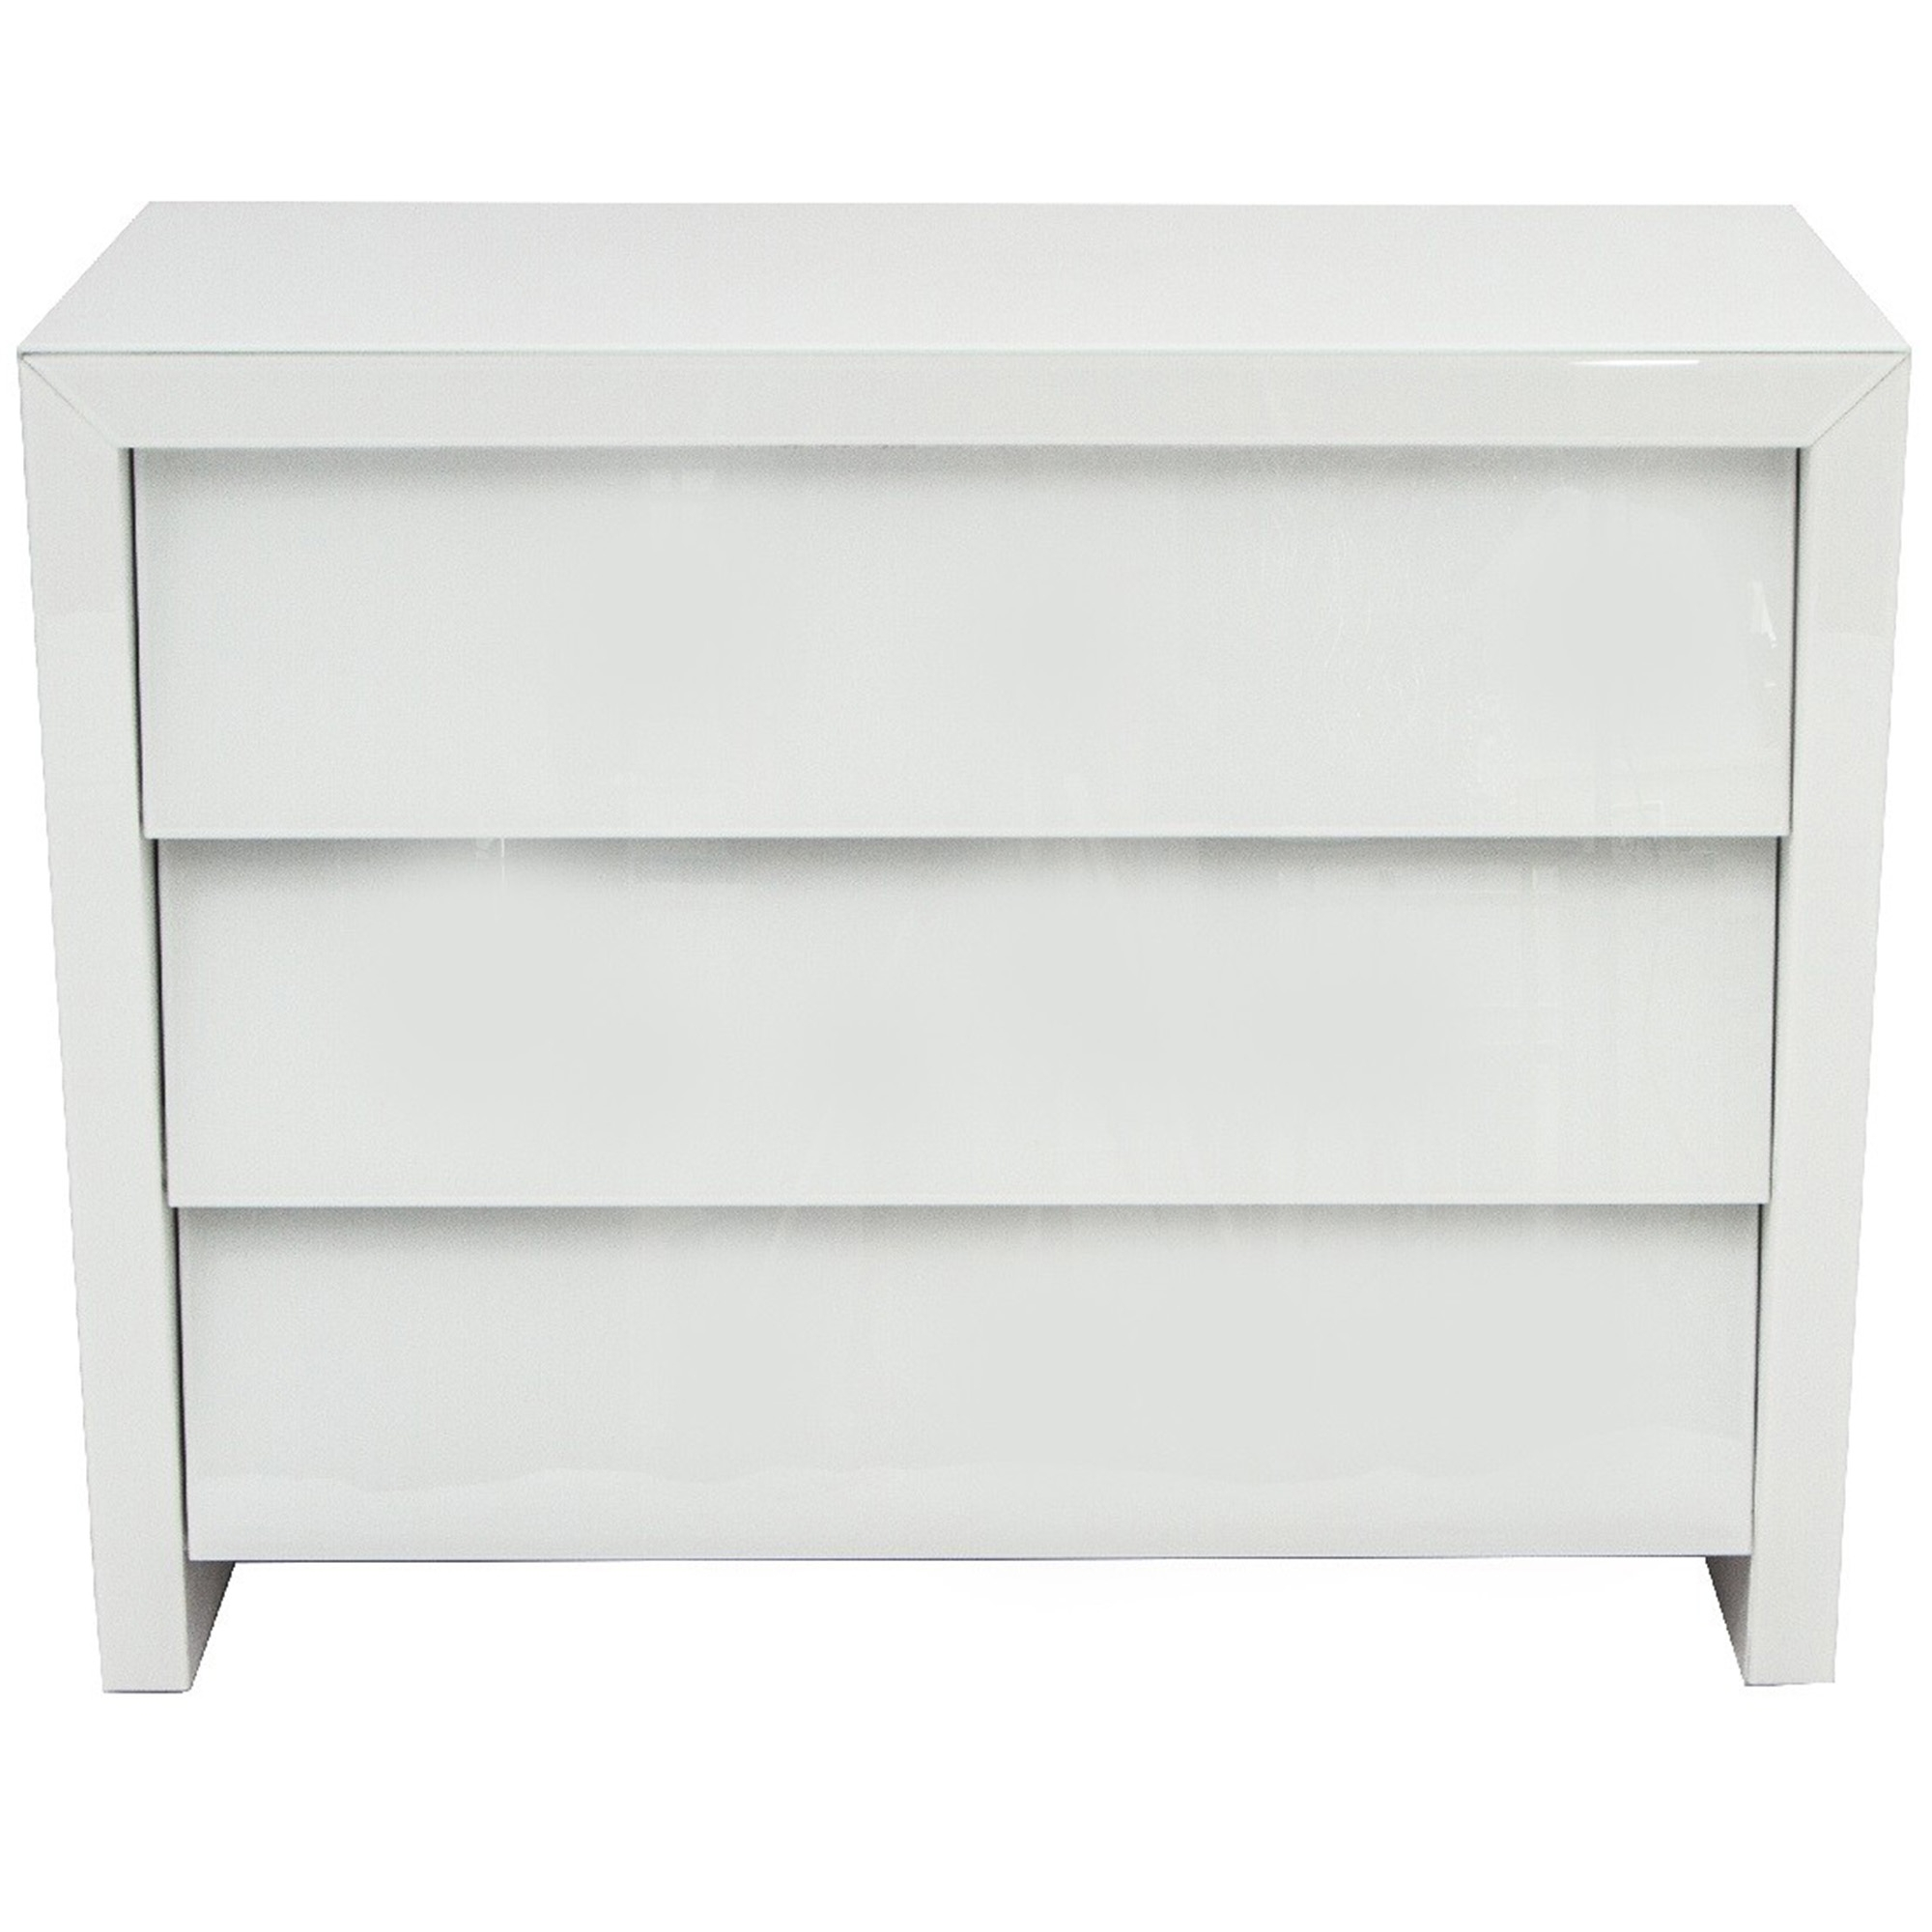 white glass furniture. White Glass Chest Of Drawers Furniture I